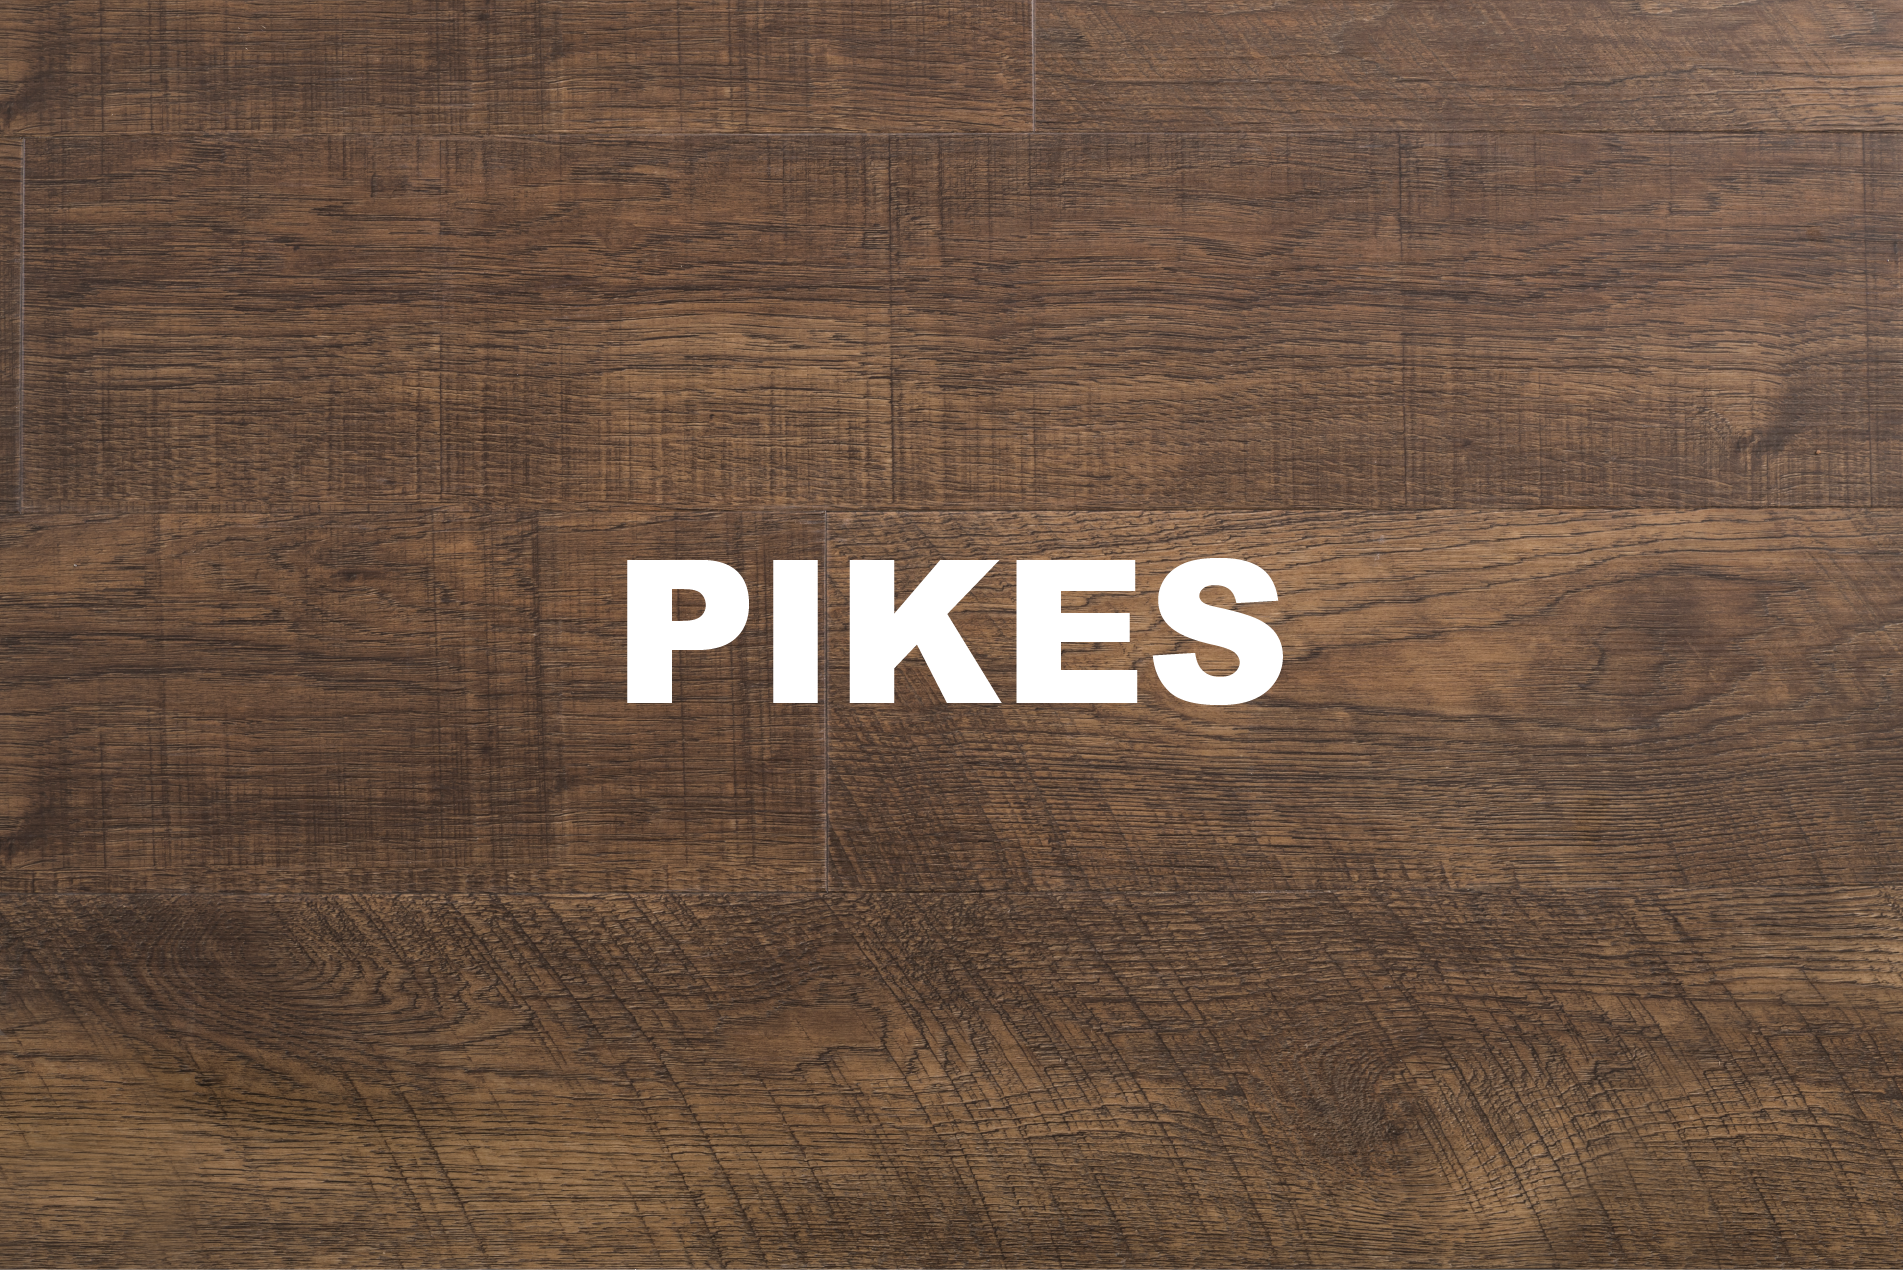 Pikes.png